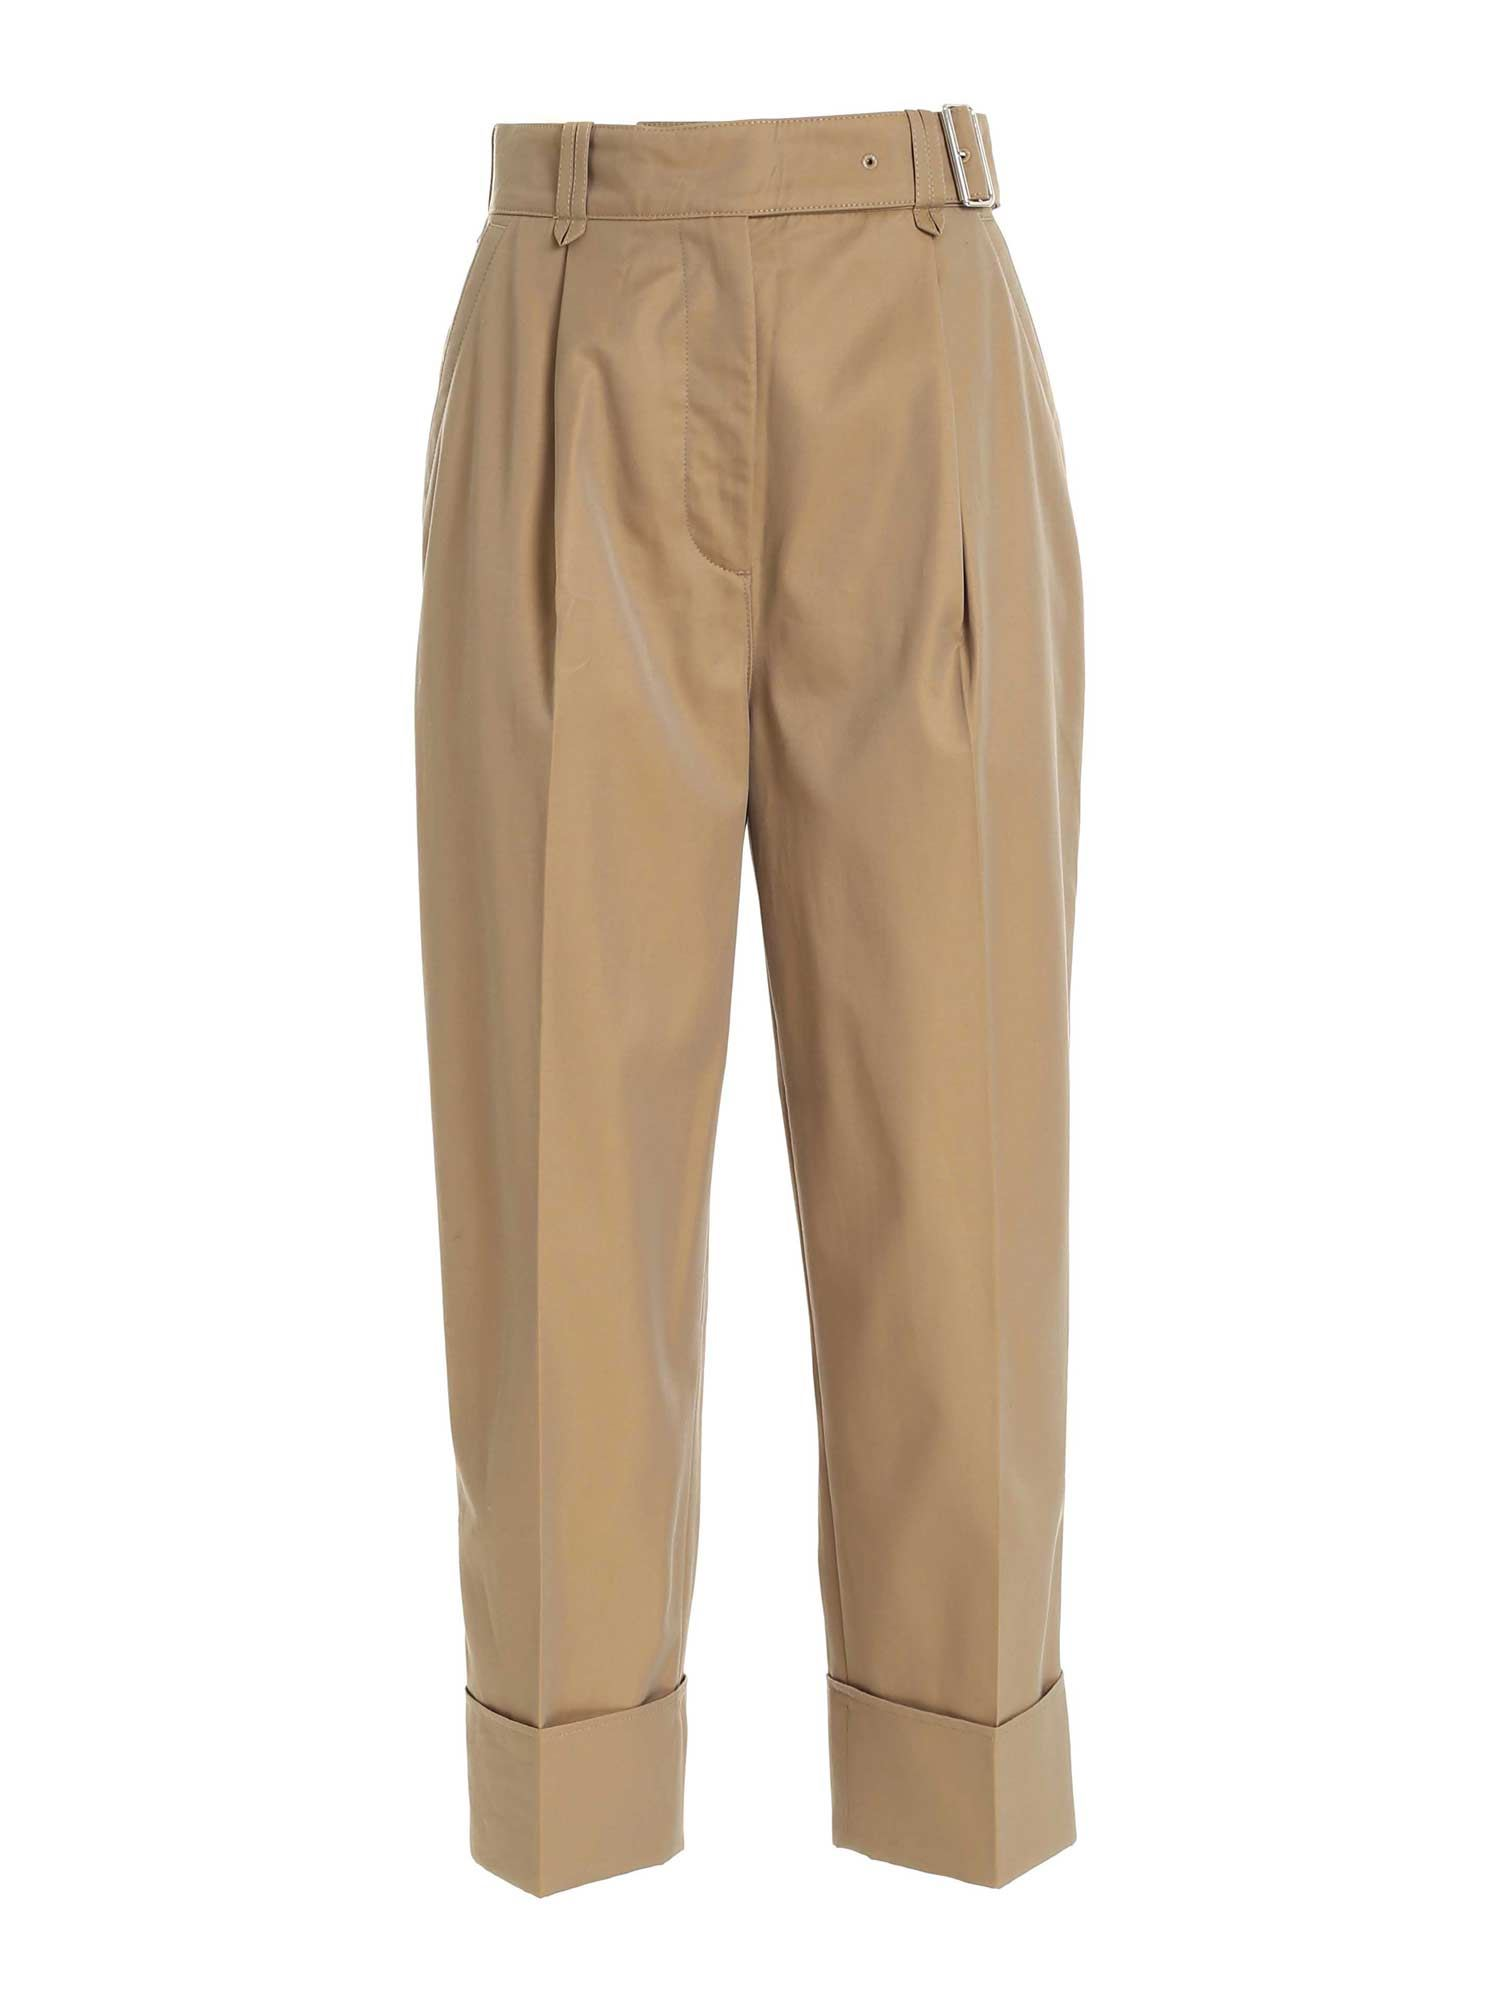 Acne Studios TURNED-UP HEM PANTS IN HAZELNUT COLOR